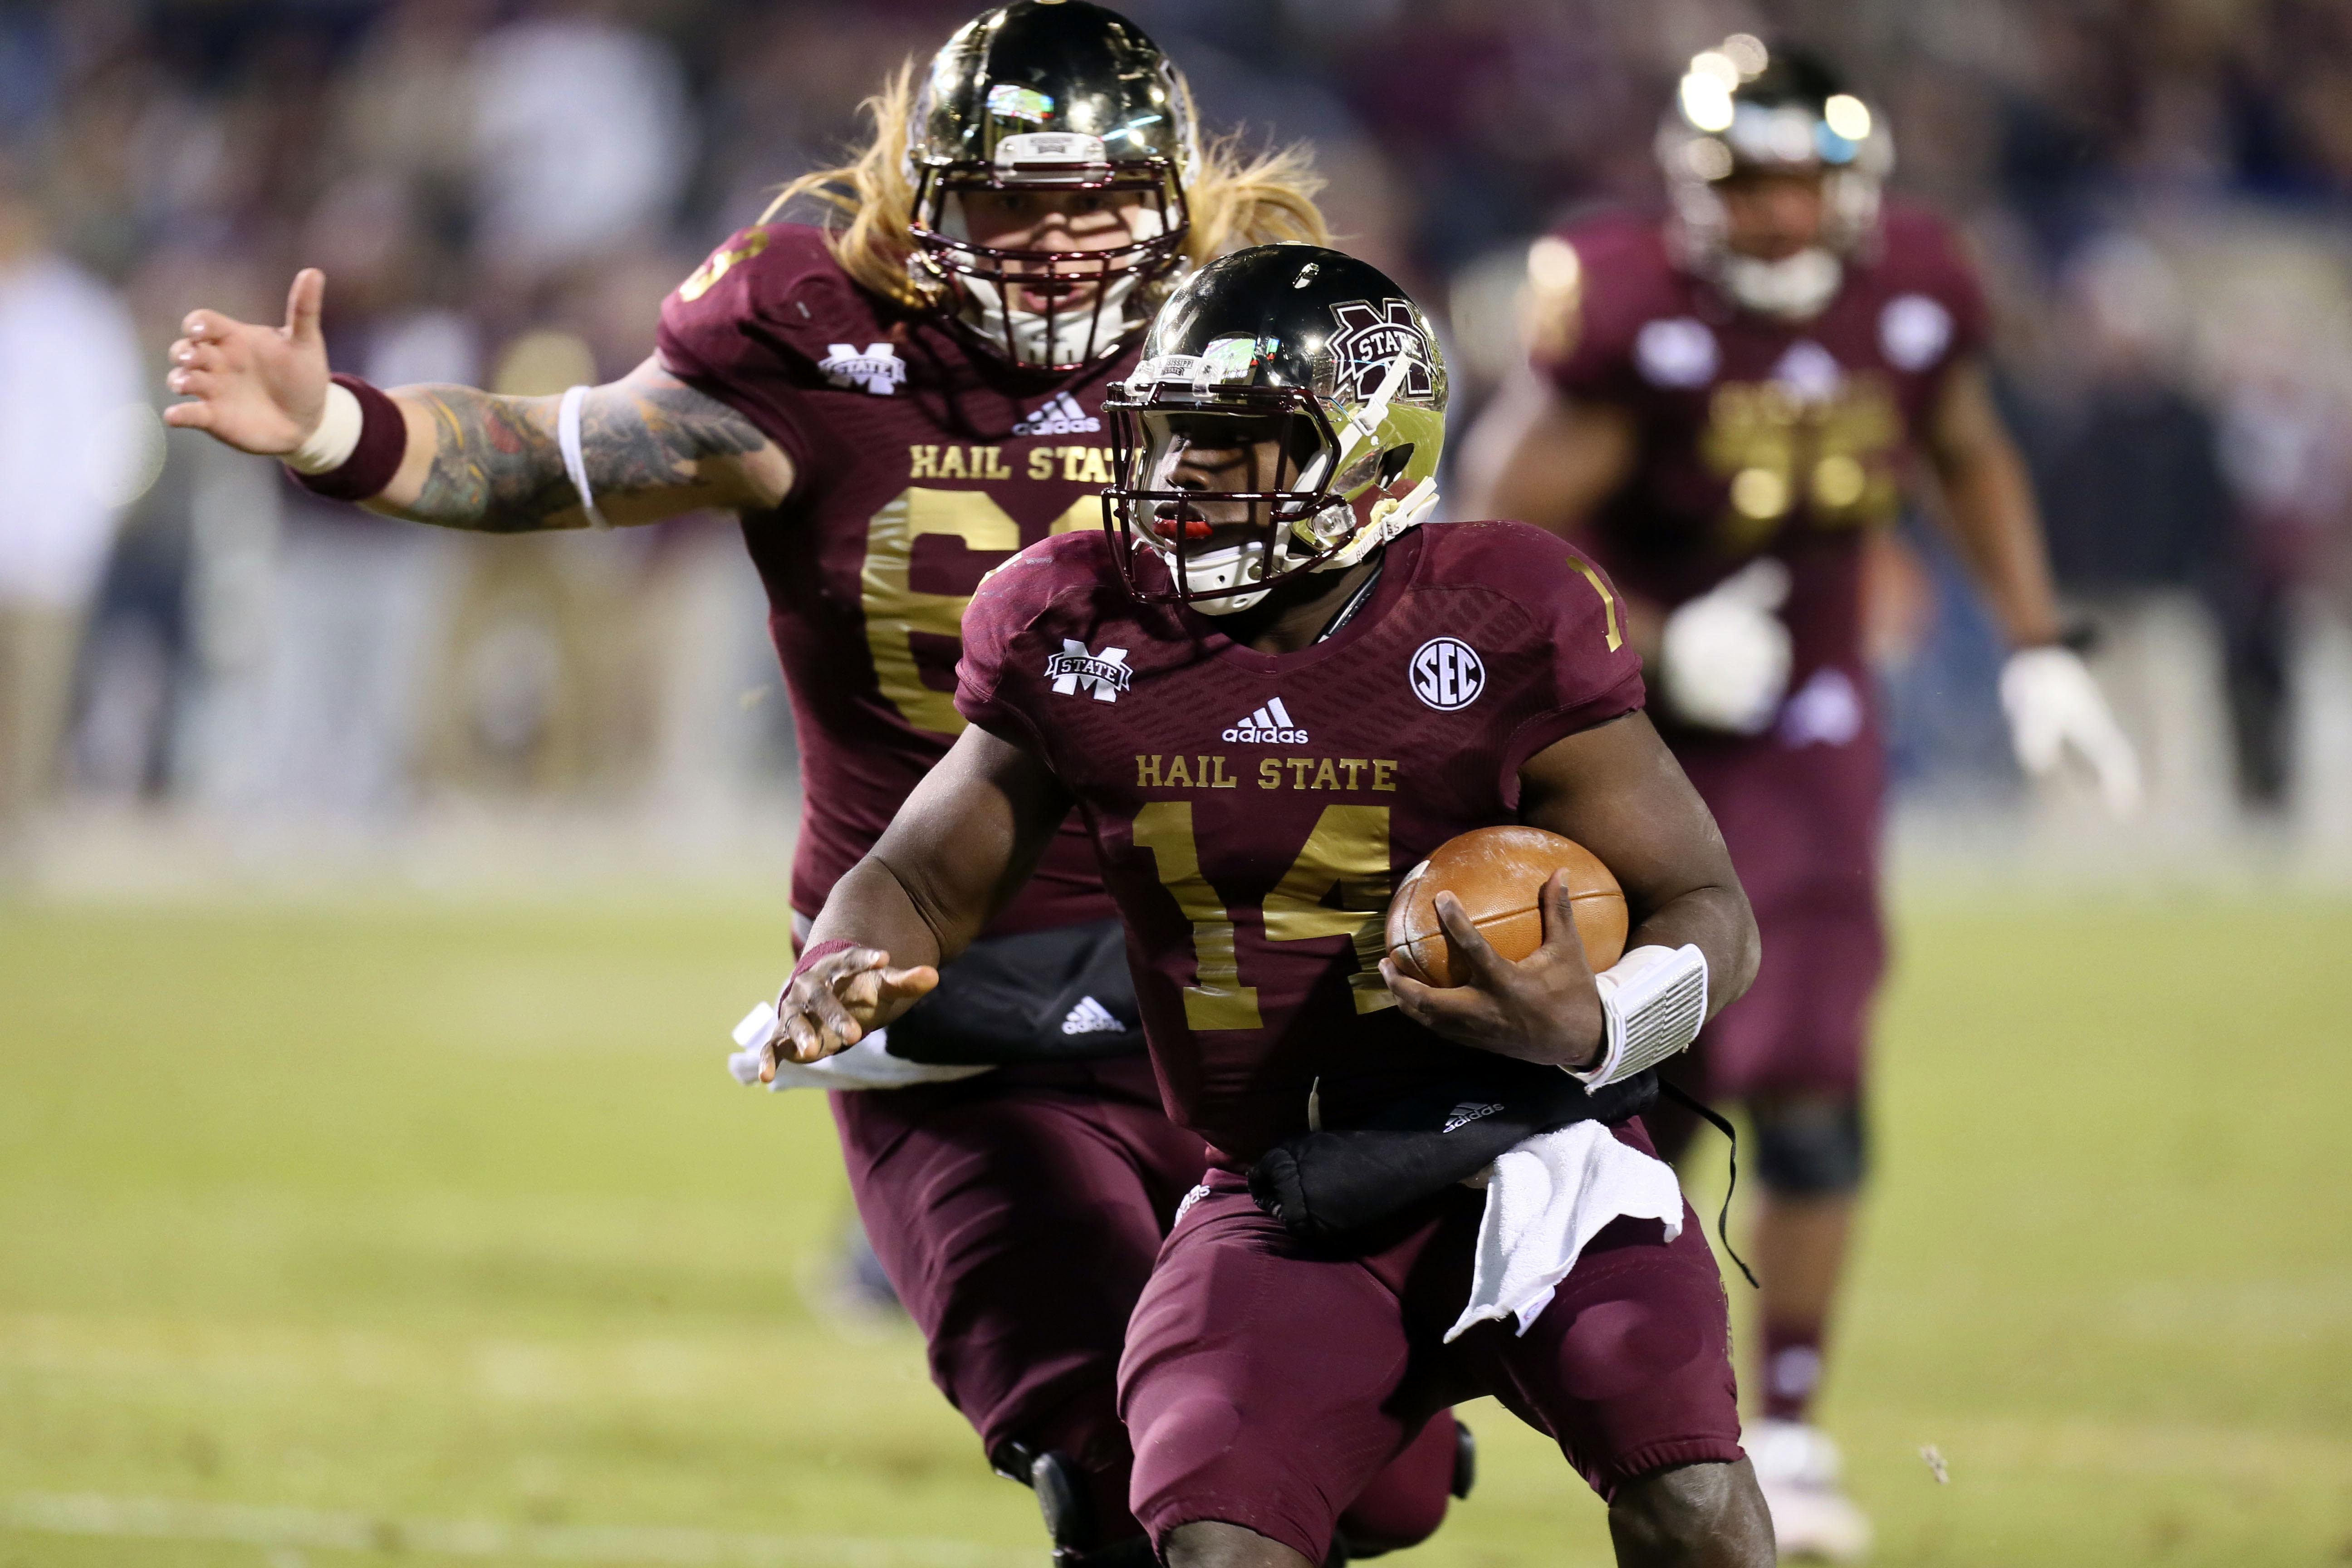 Mississippi State Bulldogs quarterback Damian Williams (14) runs with the ball during the game against the Mississippi Rebels at Davis Wade Stadium. (Spruce Derden/USA TODAY Sports)